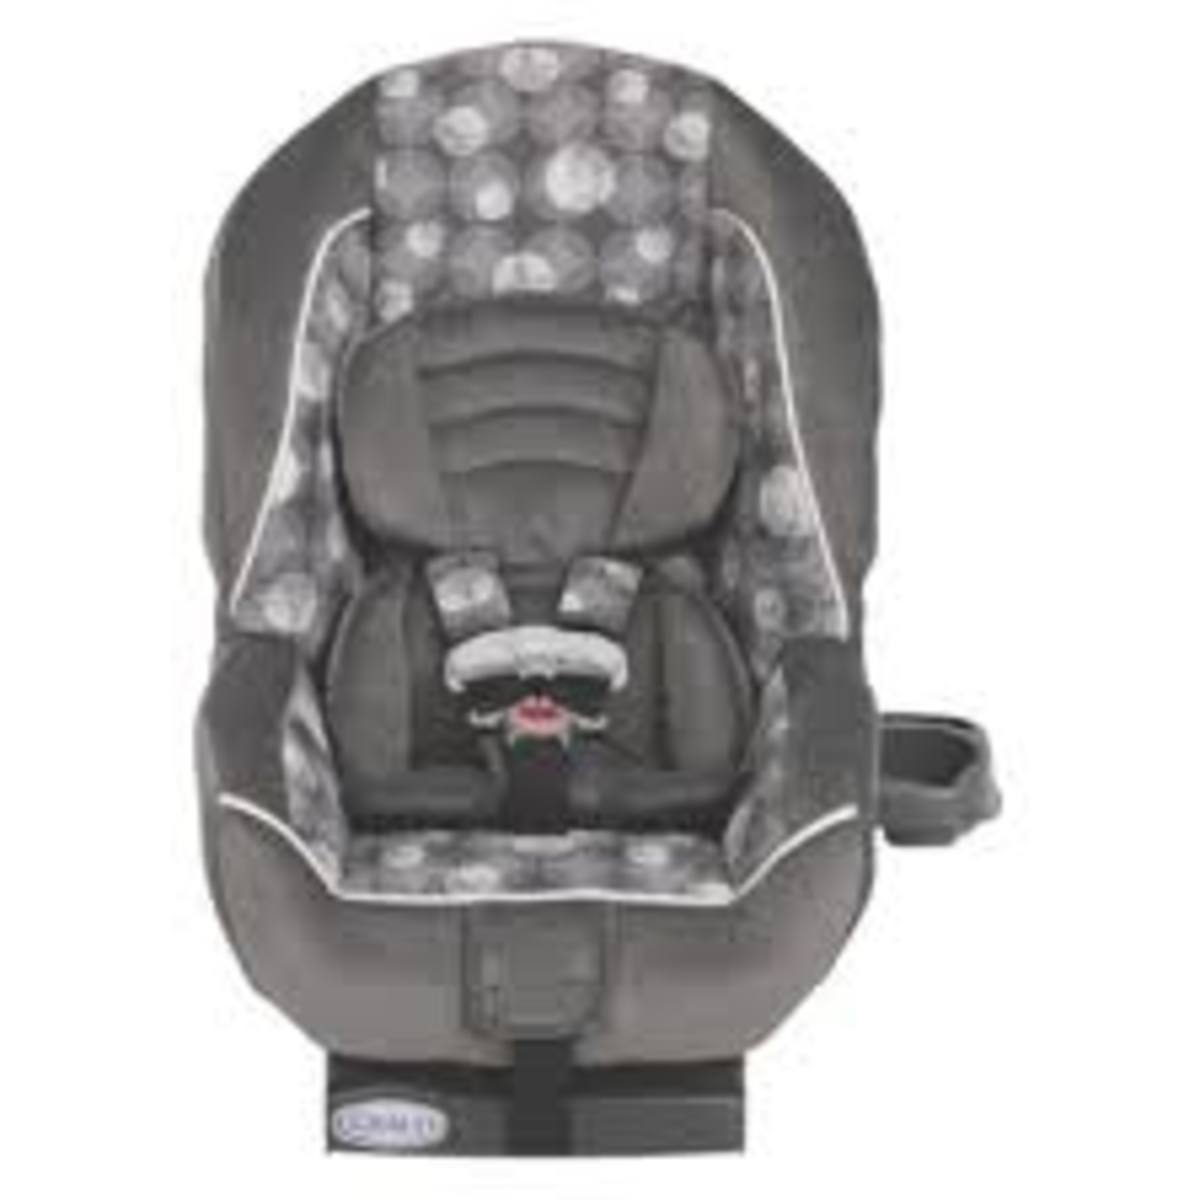 Graco Recalls 3.7 Million Car Seats www.TodaysMama.com #recall #carseat